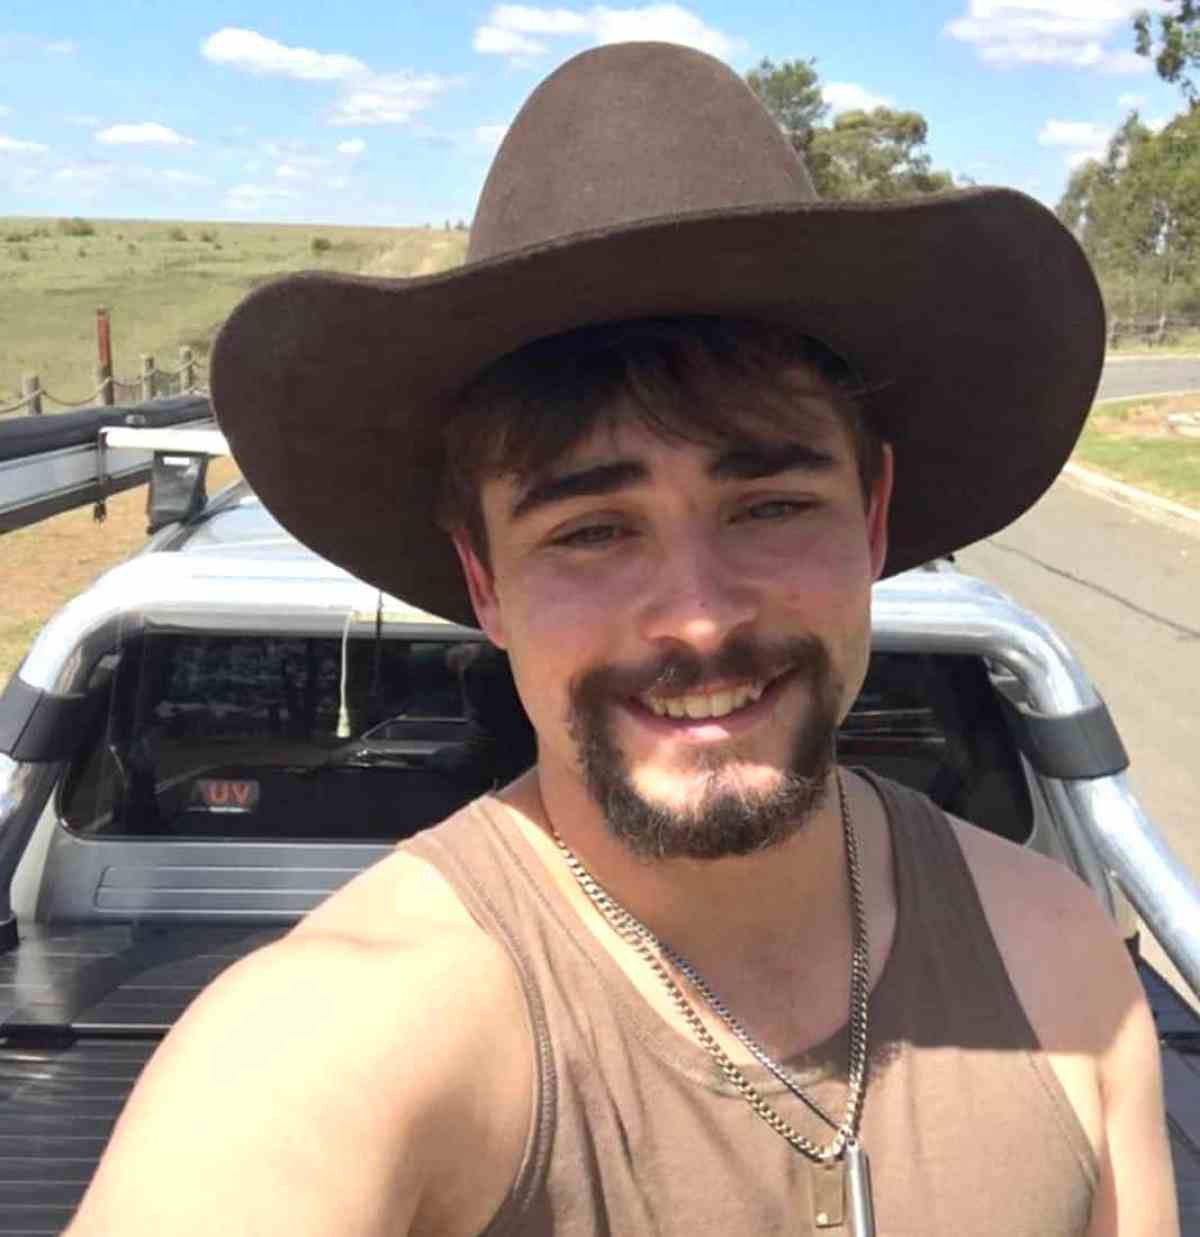 Gay Rodeo Cowboy Getting Homophobic Death Threats Has A Message For